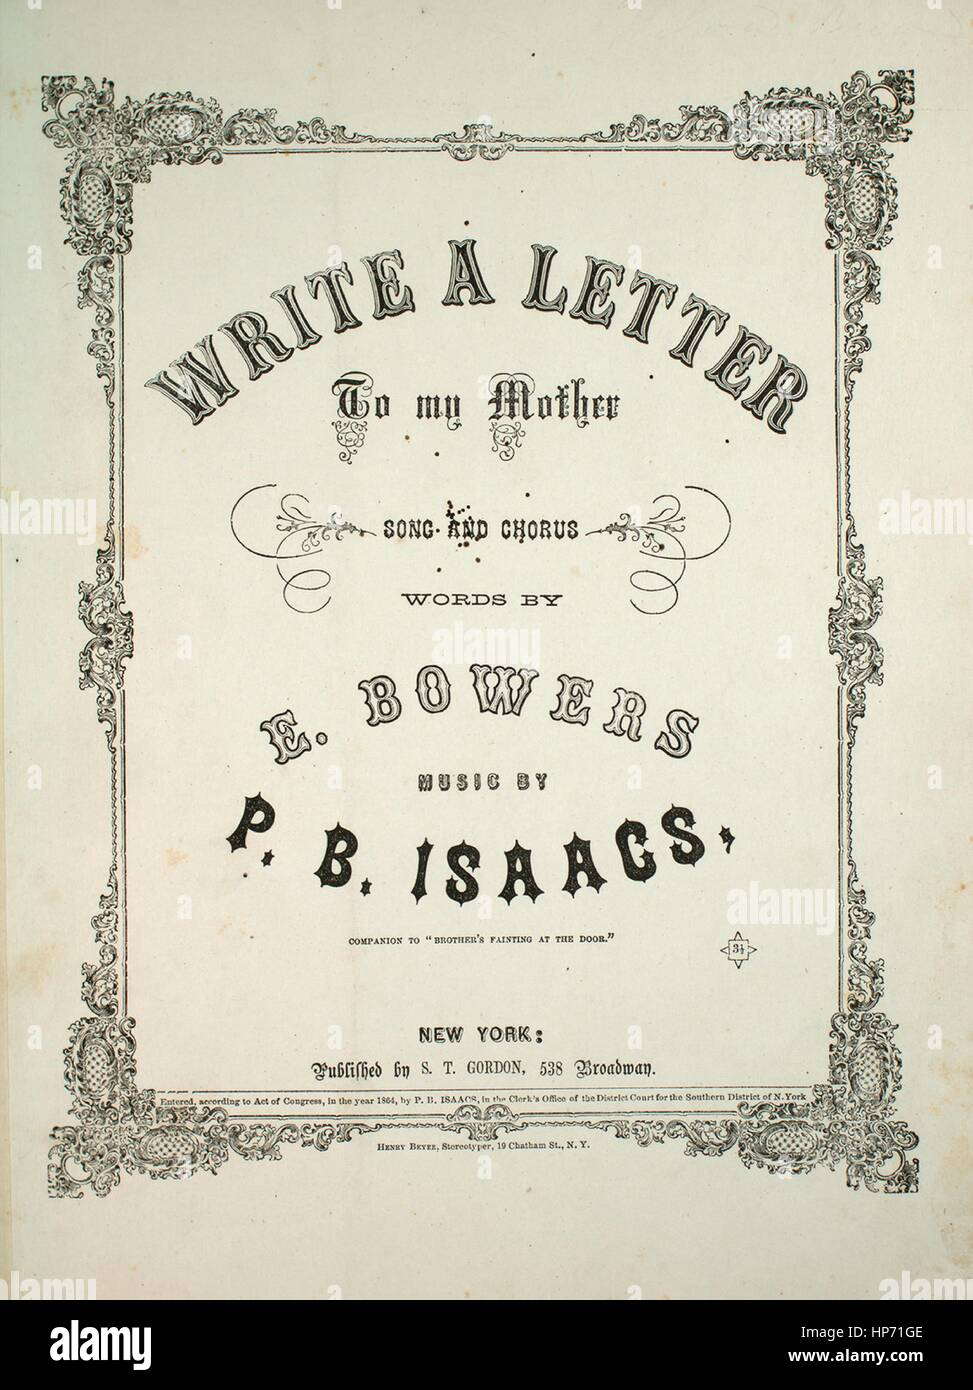 Sheet Music Cover Image Of The Song Write A Letter To My Mother Song And Chorus Companion To Brothers Fainting At The Door With Original Authorship